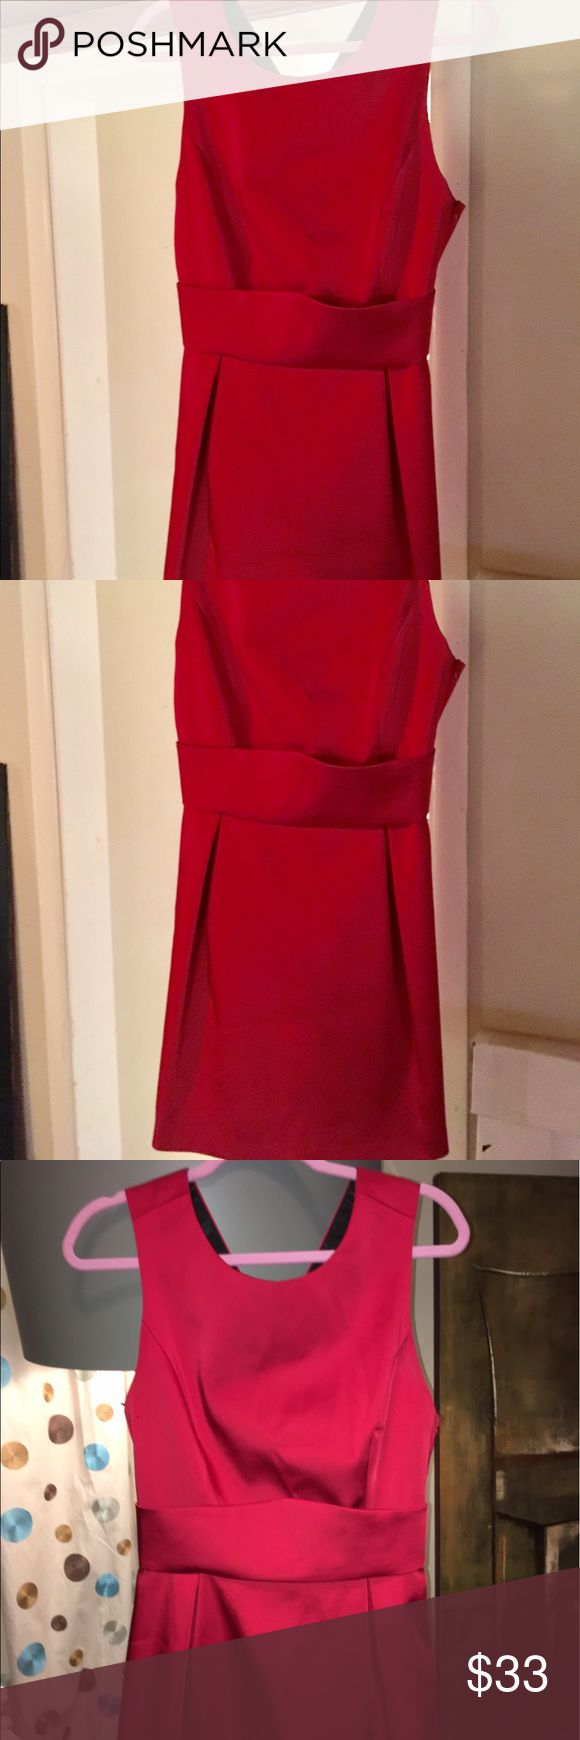 """💋NEW ZARA STRIKING RED OCCASION DRESS 6, 8💋 💋BRAND NEW AND STUNNING ZARA DRESS. FABRIC IS THICK, WEIGHTY AND GREAT QUALITY FOR THE PRICE POINT. WIDE X SHAPE SHOULDER STRAPS ACCENT YOUR DÉCOLLETÉ  BEAUTIFULLY AND EMPIRE WAIST FURTHER ENHANCES YOUR FIGURE.. THE LENGTH IS A FEW INCHES ABOVE MY KNEES AT 5'8"""". PERFECT CHOICE FOR ANY EVENING AFFAIR. BUST>36"""", PIT TO PIT>18"""", WAIST>30"""", HIPS>40"""". SIZE L WHICH IS 6/8. SEE KEEPSAKE, FOR LOVE & LEMONS, J. CREW, SABO SKIRT, REFORMATION, RAG & BONE…"""